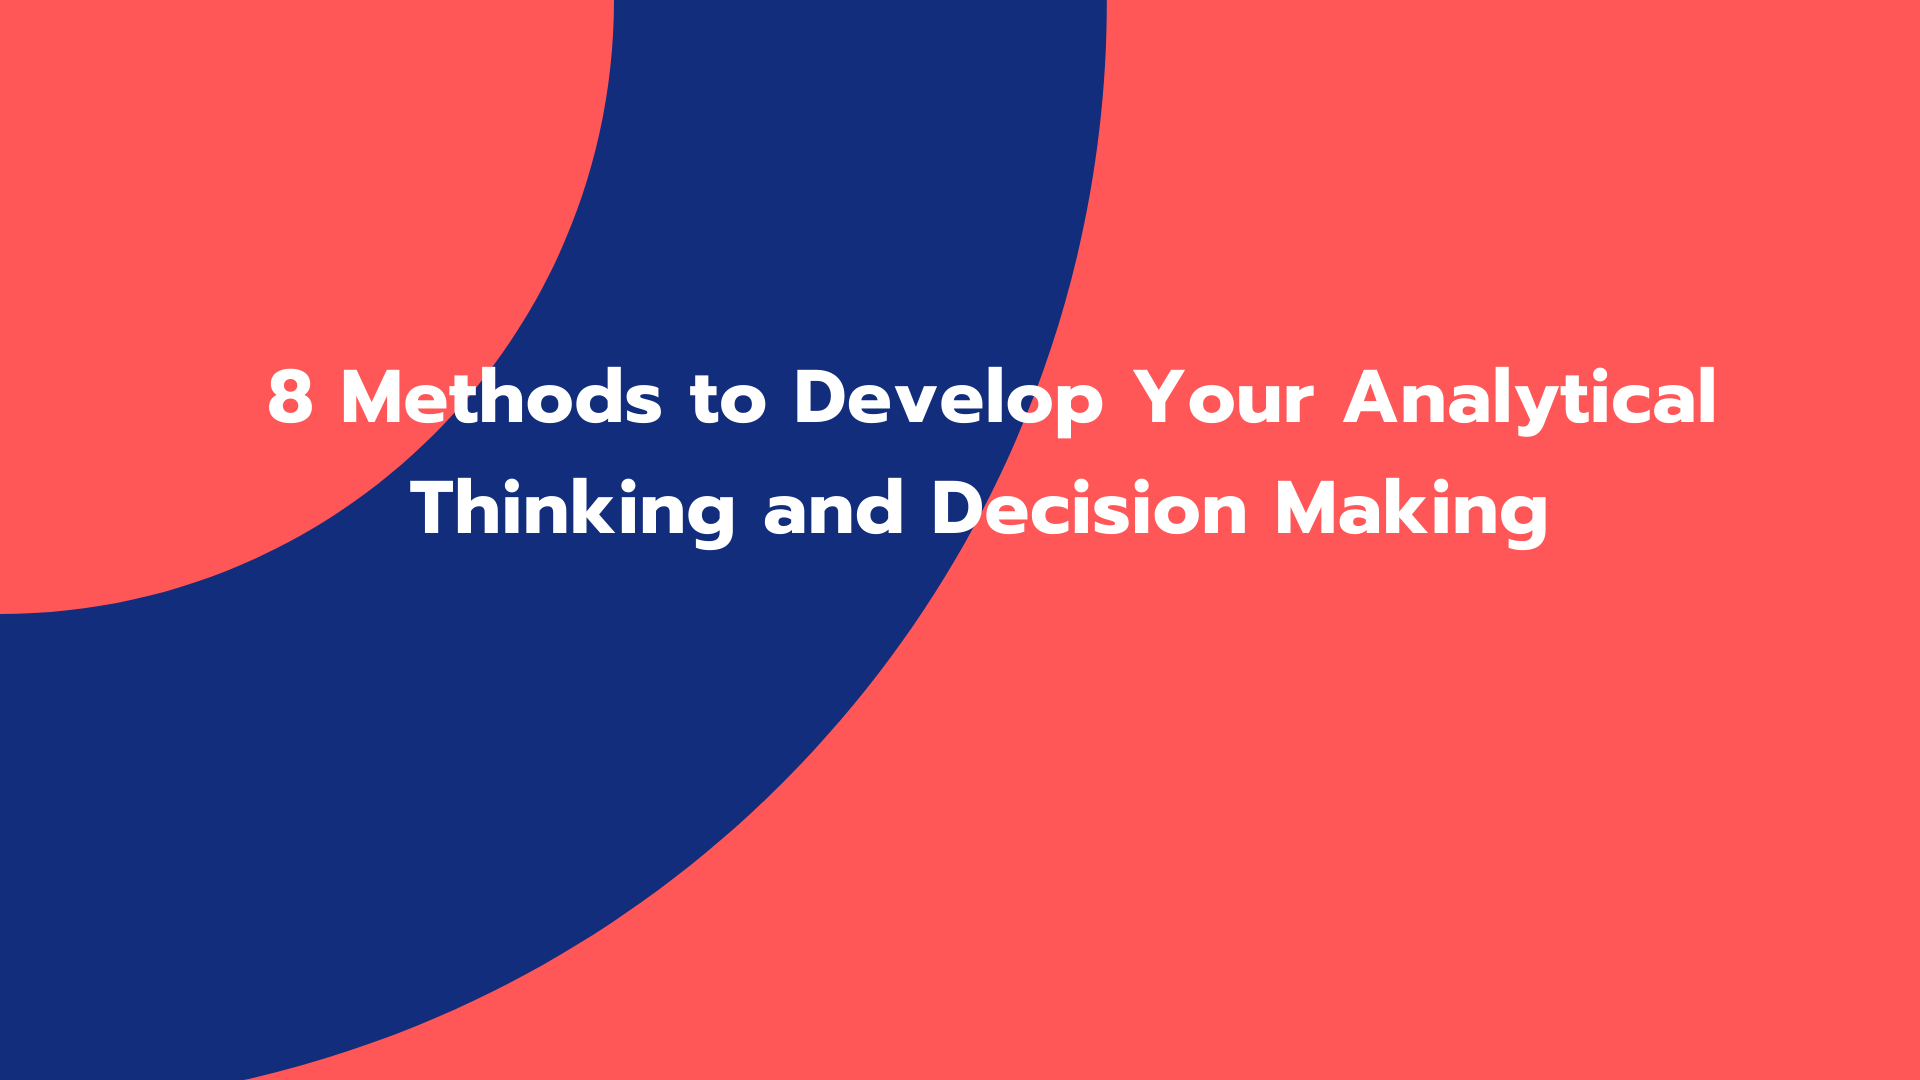 8 Methods to Develop Your Analytical Thinking and Decision Making